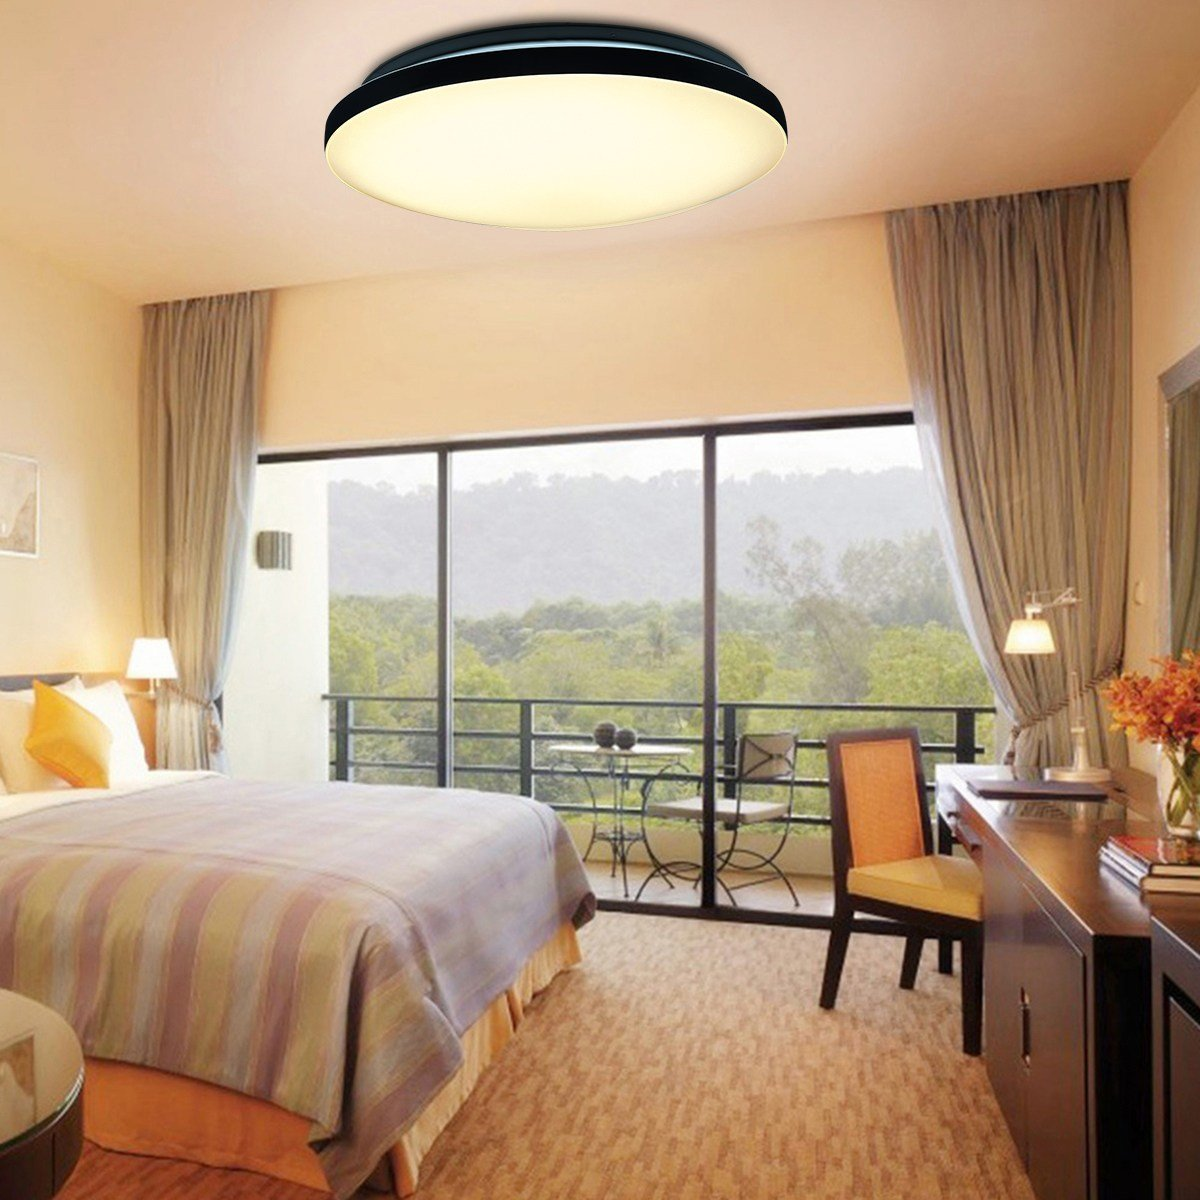 Best 24W Round Led Ceiling Light Flush Mount Fixture Lamp For Kitchen Balcony Bedroom Ebay With Pictures